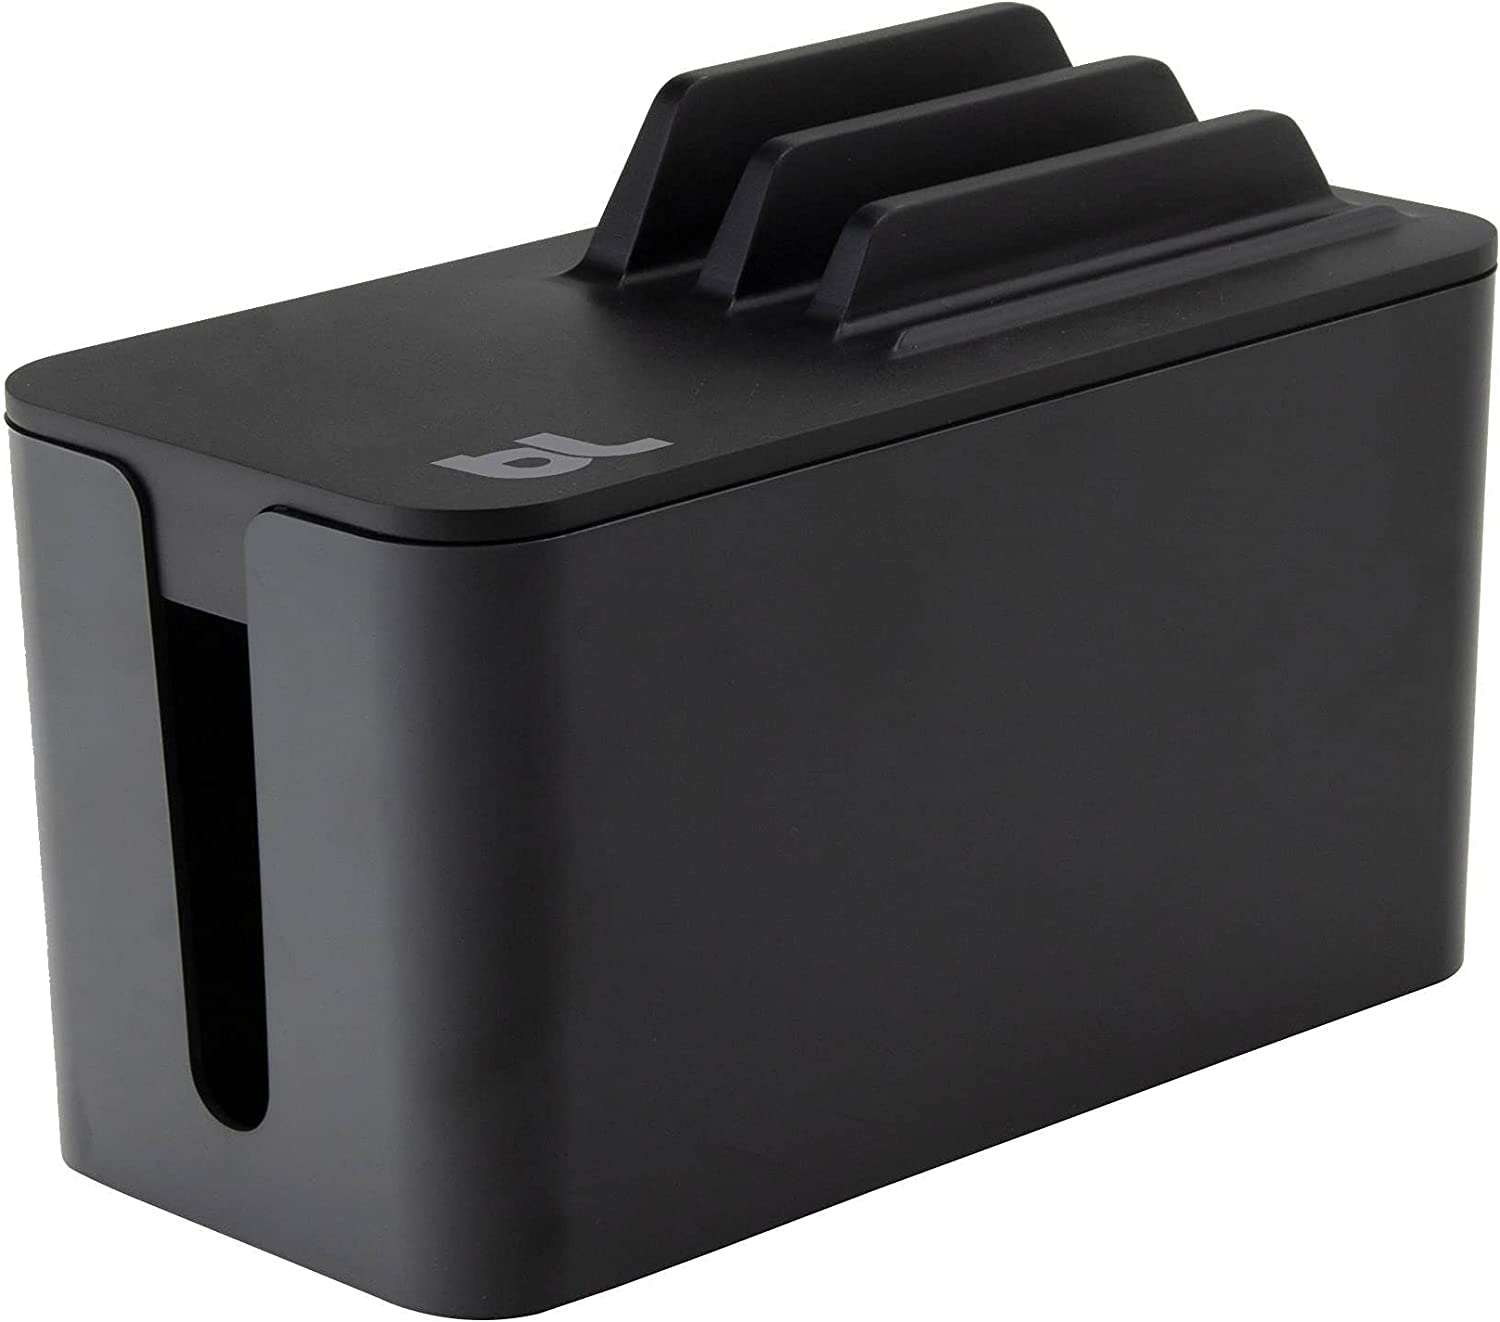 Ranking TOP11 Bluelounge CableBox Mini Station Black Cable and Cord Online limited product Management